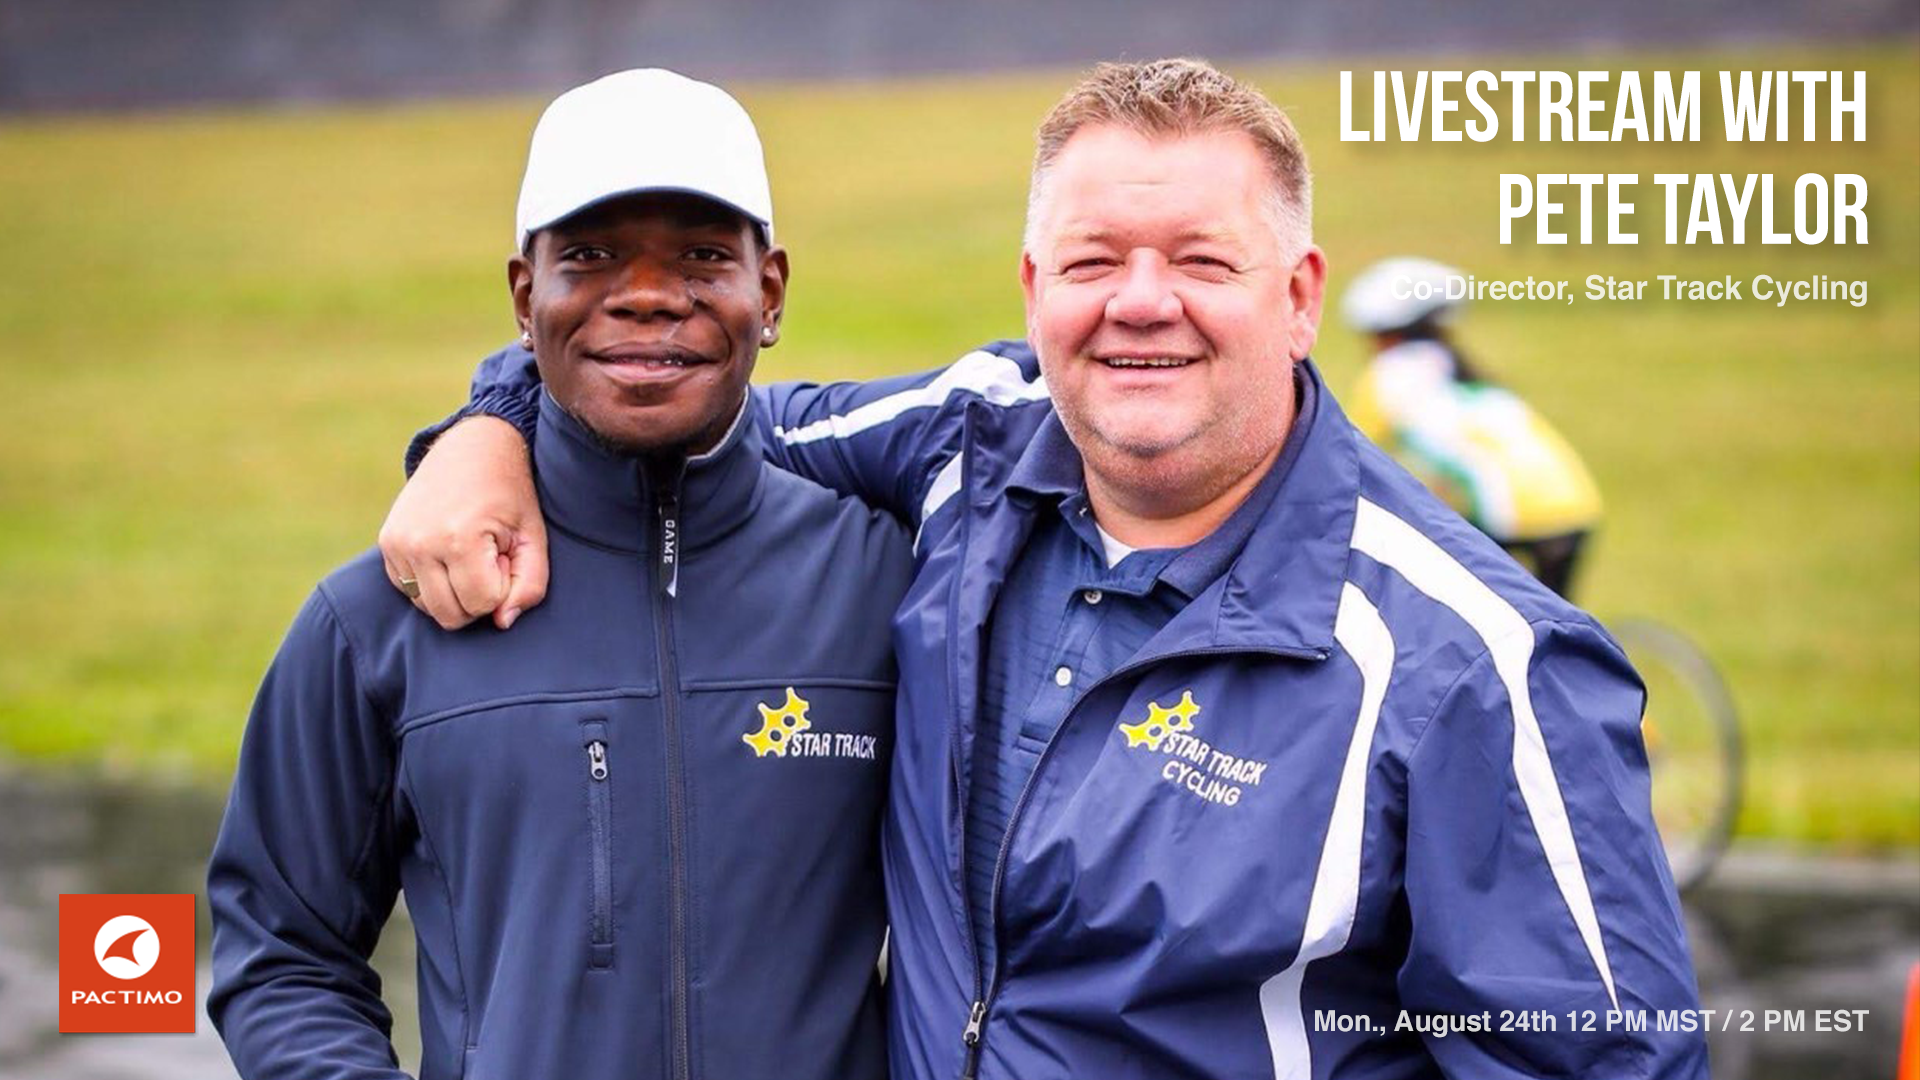 Livestream Replay: Pete Taylor - Track Coach, Visionary